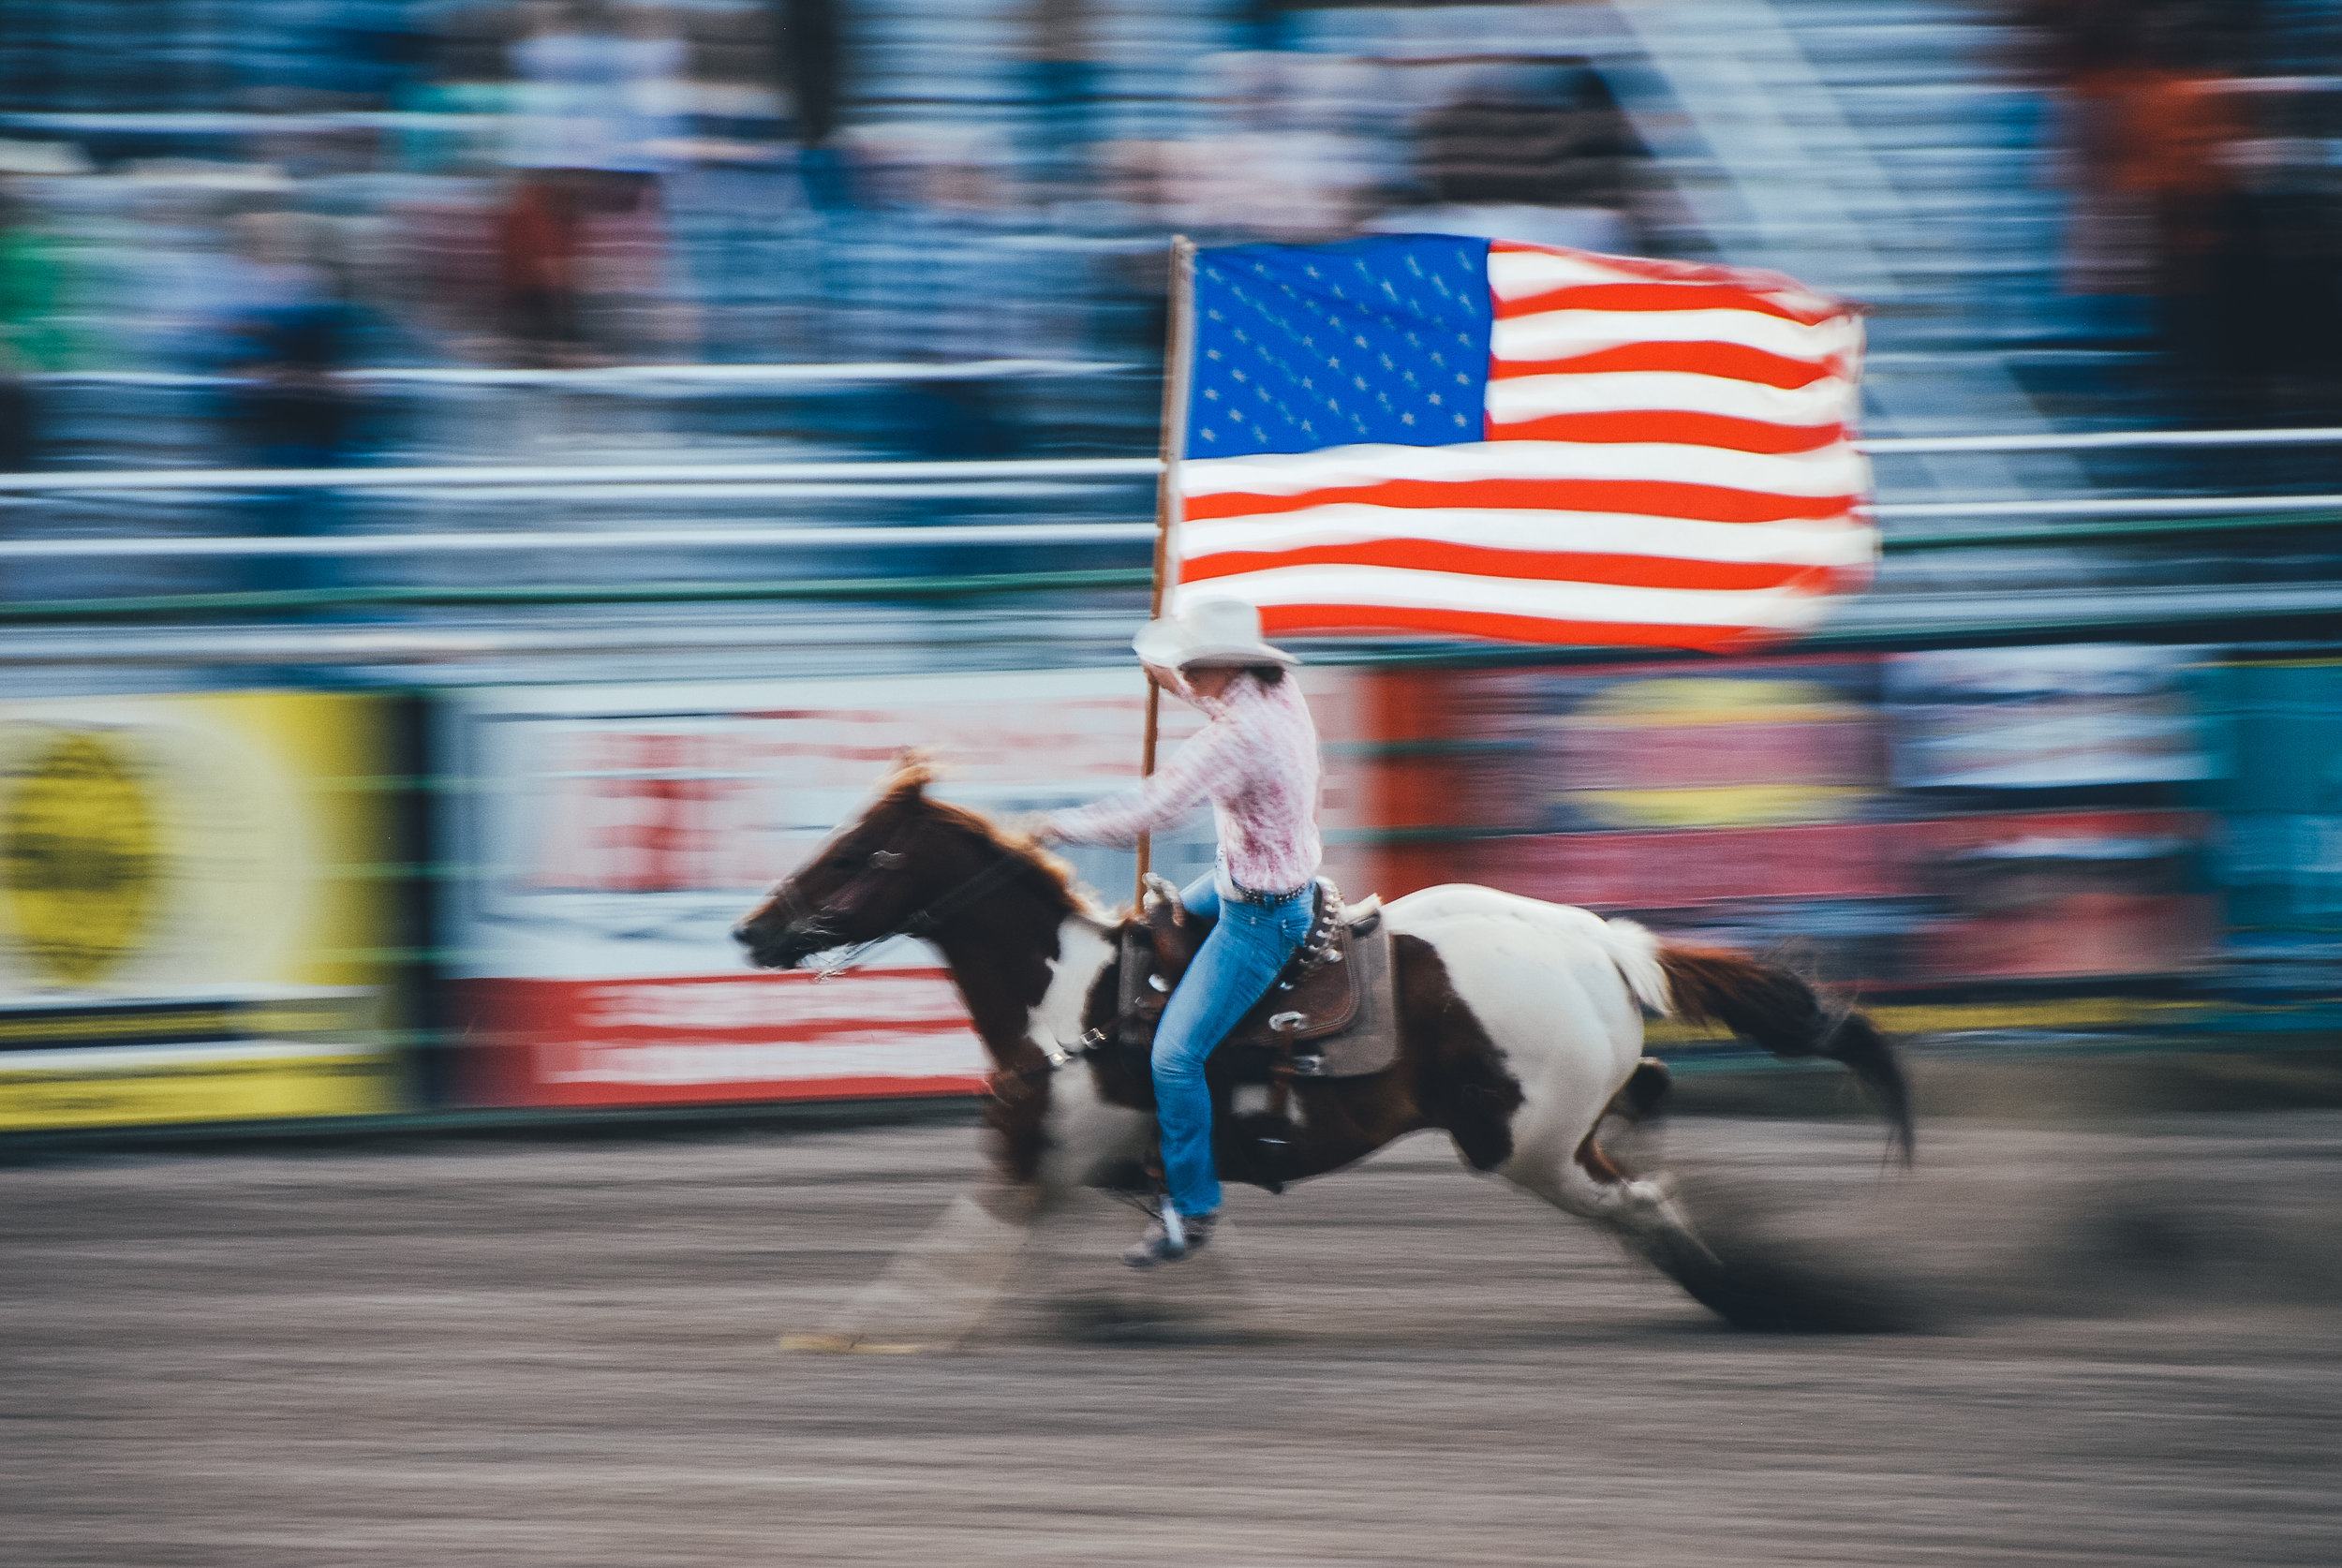 Cherokee Can Chase(Barrel Racing) - 7:00 pmMain ArenaFlyer